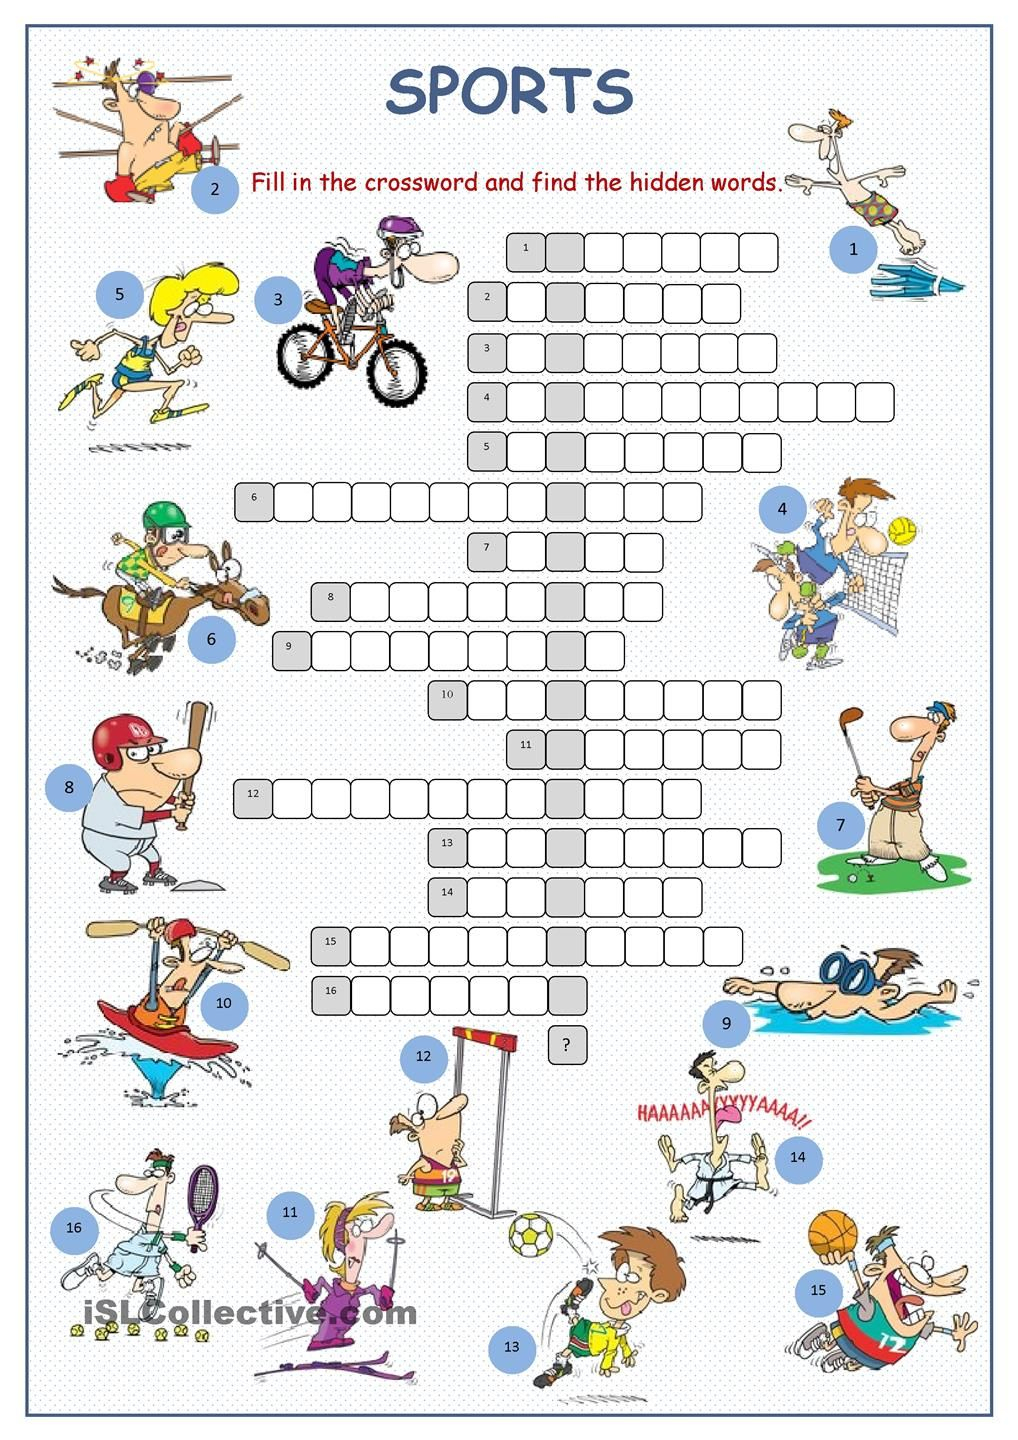 Sports Crossword Puzzle | English | Sports Crossword, Sport English - Printable Sports Crossword Puzzles With Answers